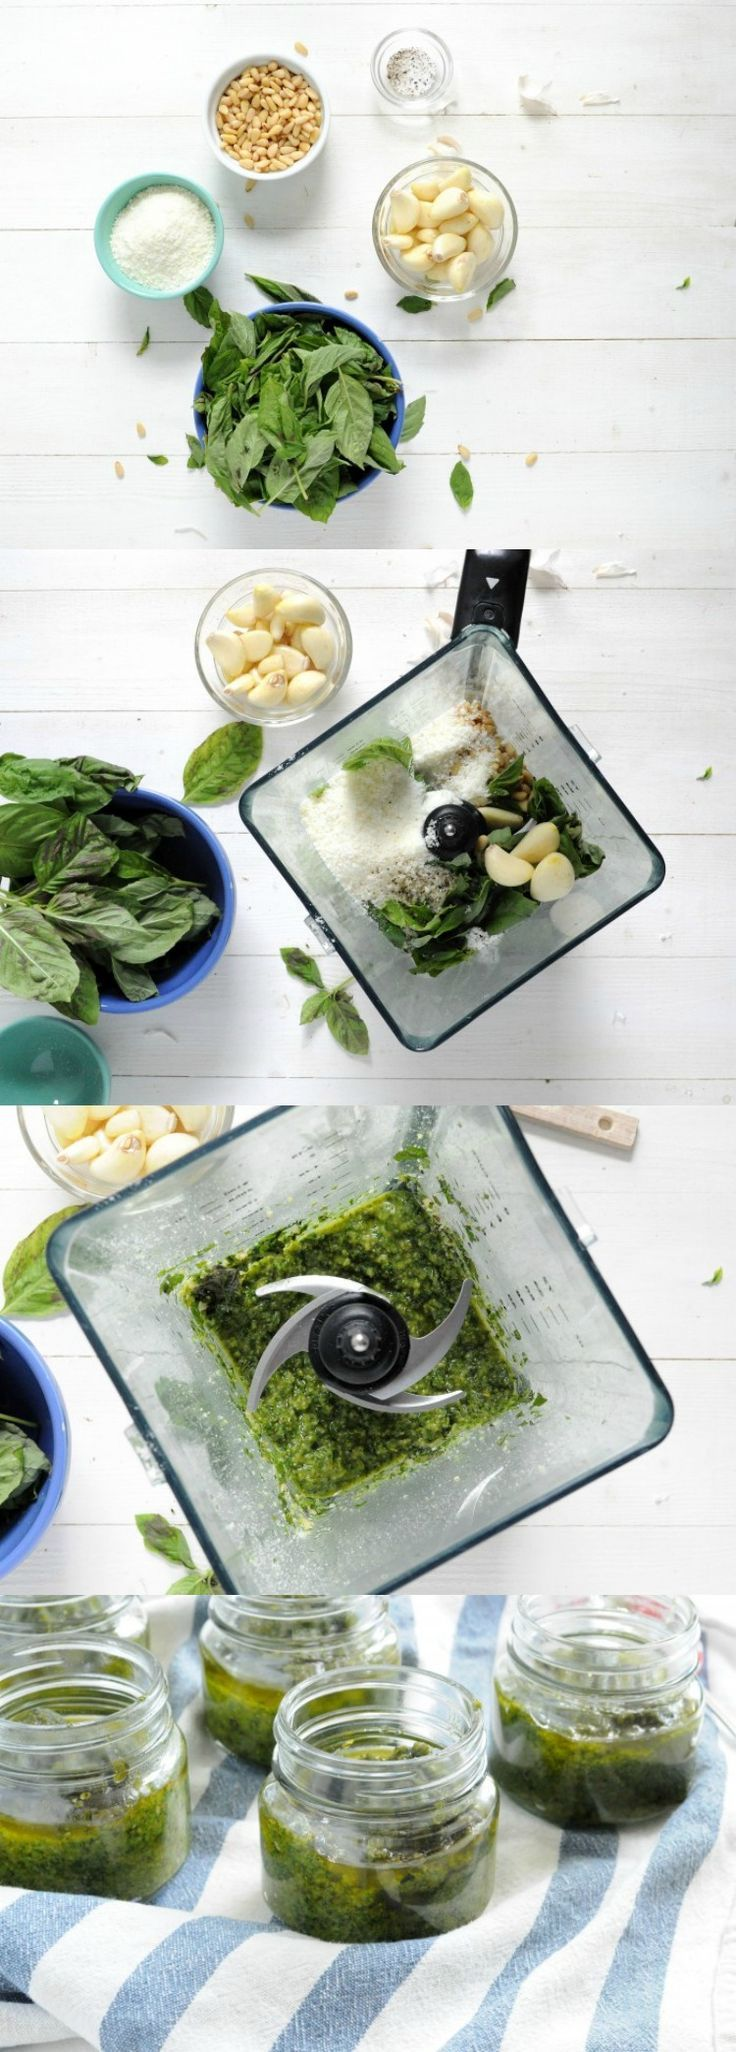 This classic pesto recipe uses loads of fresh basil, pine nuts, parm, and olive oil. It's savory and delicious - the best pesto recipe you'll find!